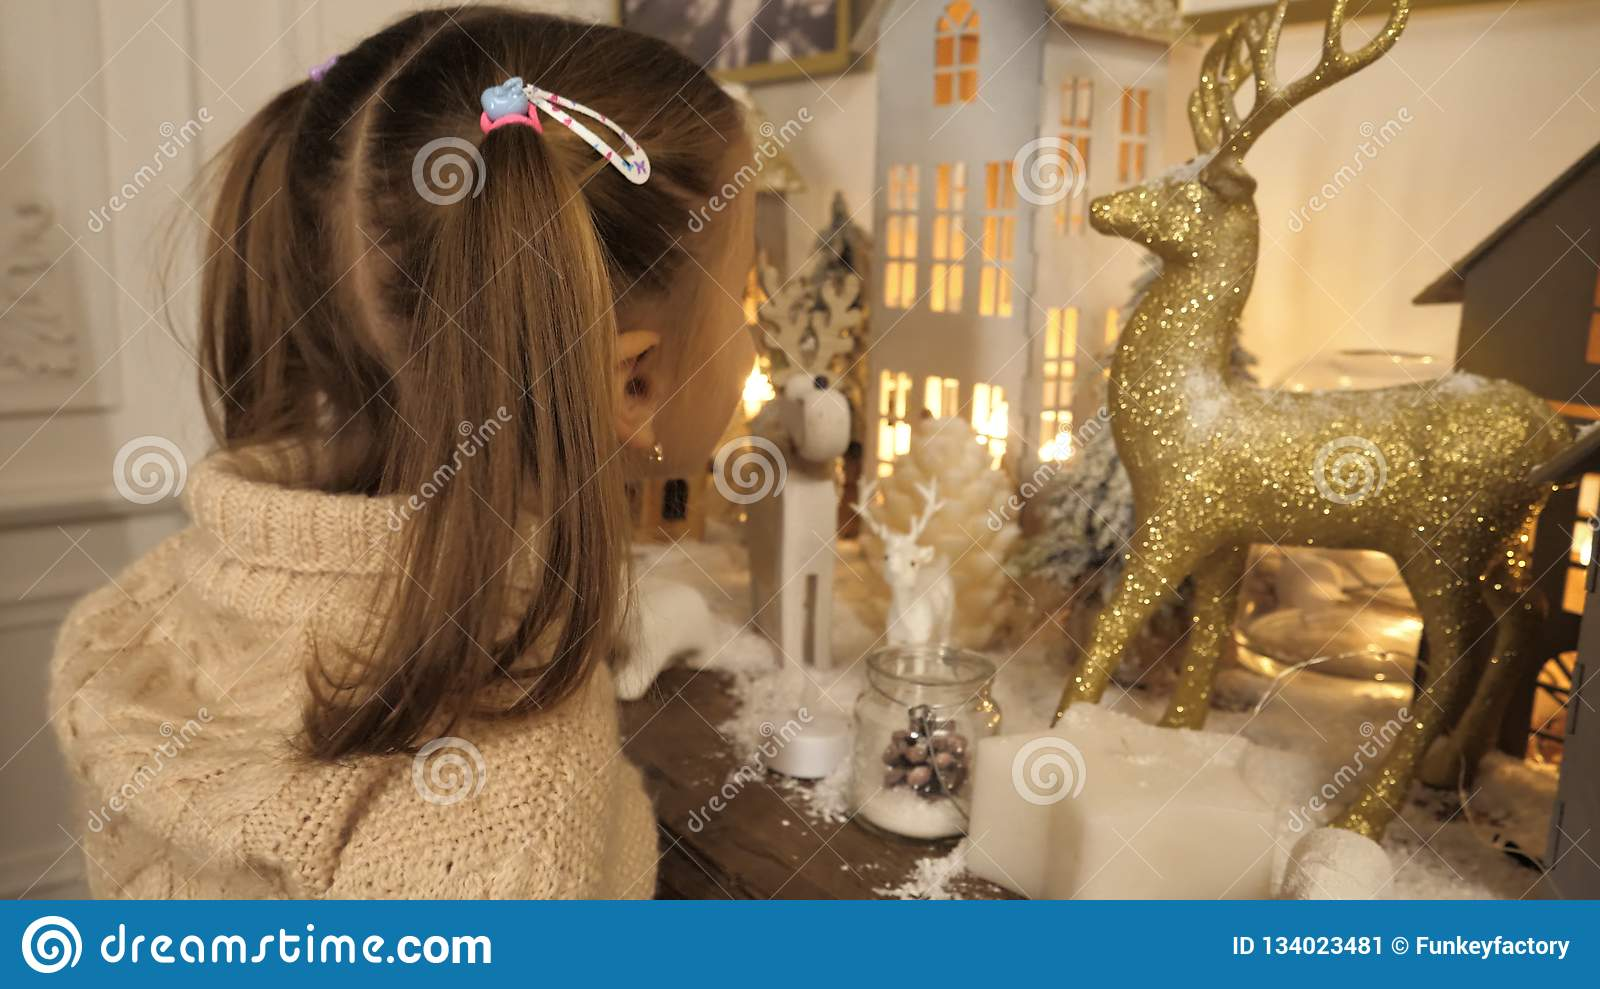 Cute little girl looking at christmas decorations.